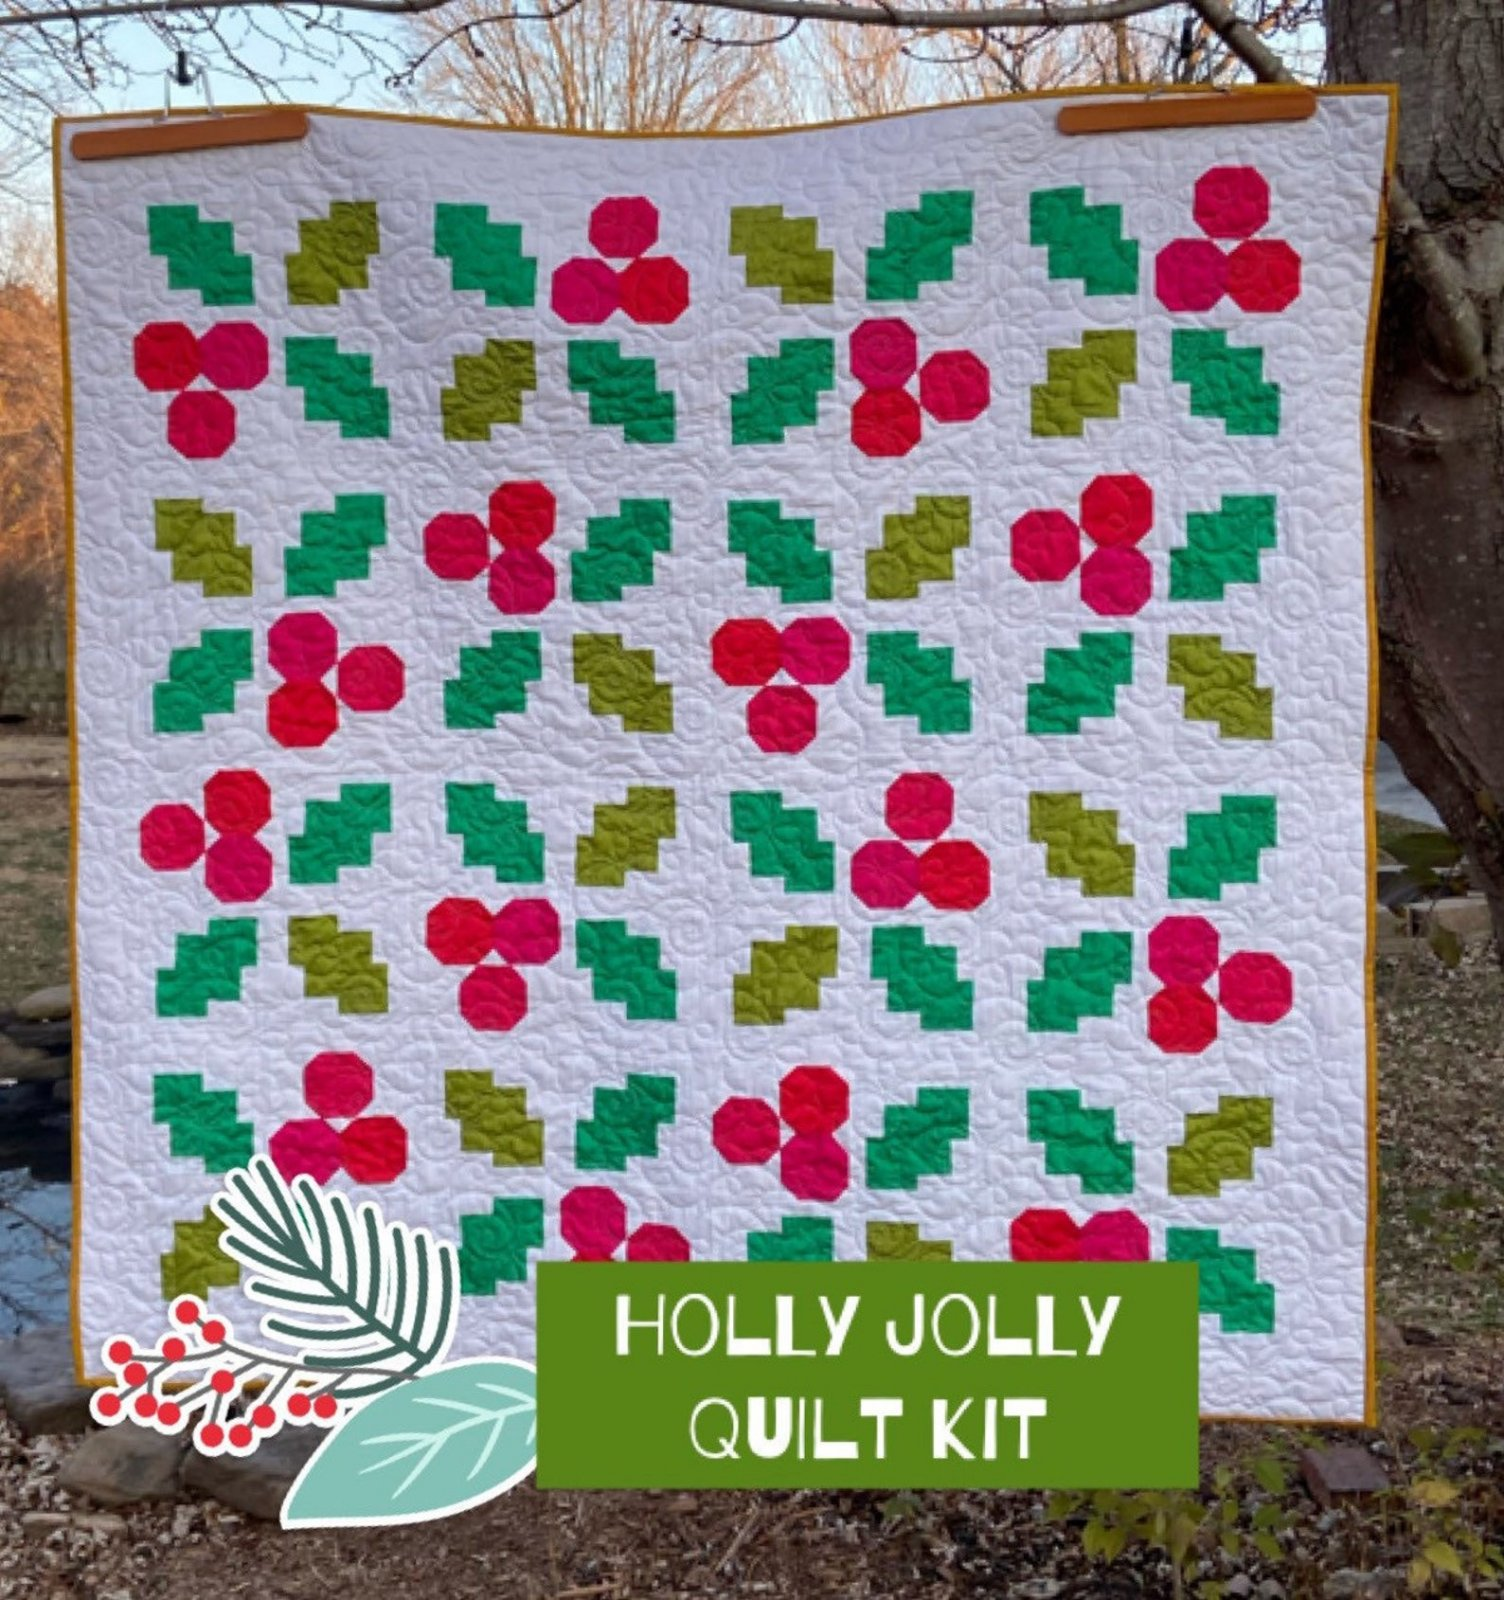 The Holly Jolly Quilt Kit using Pen + Paper Pattern